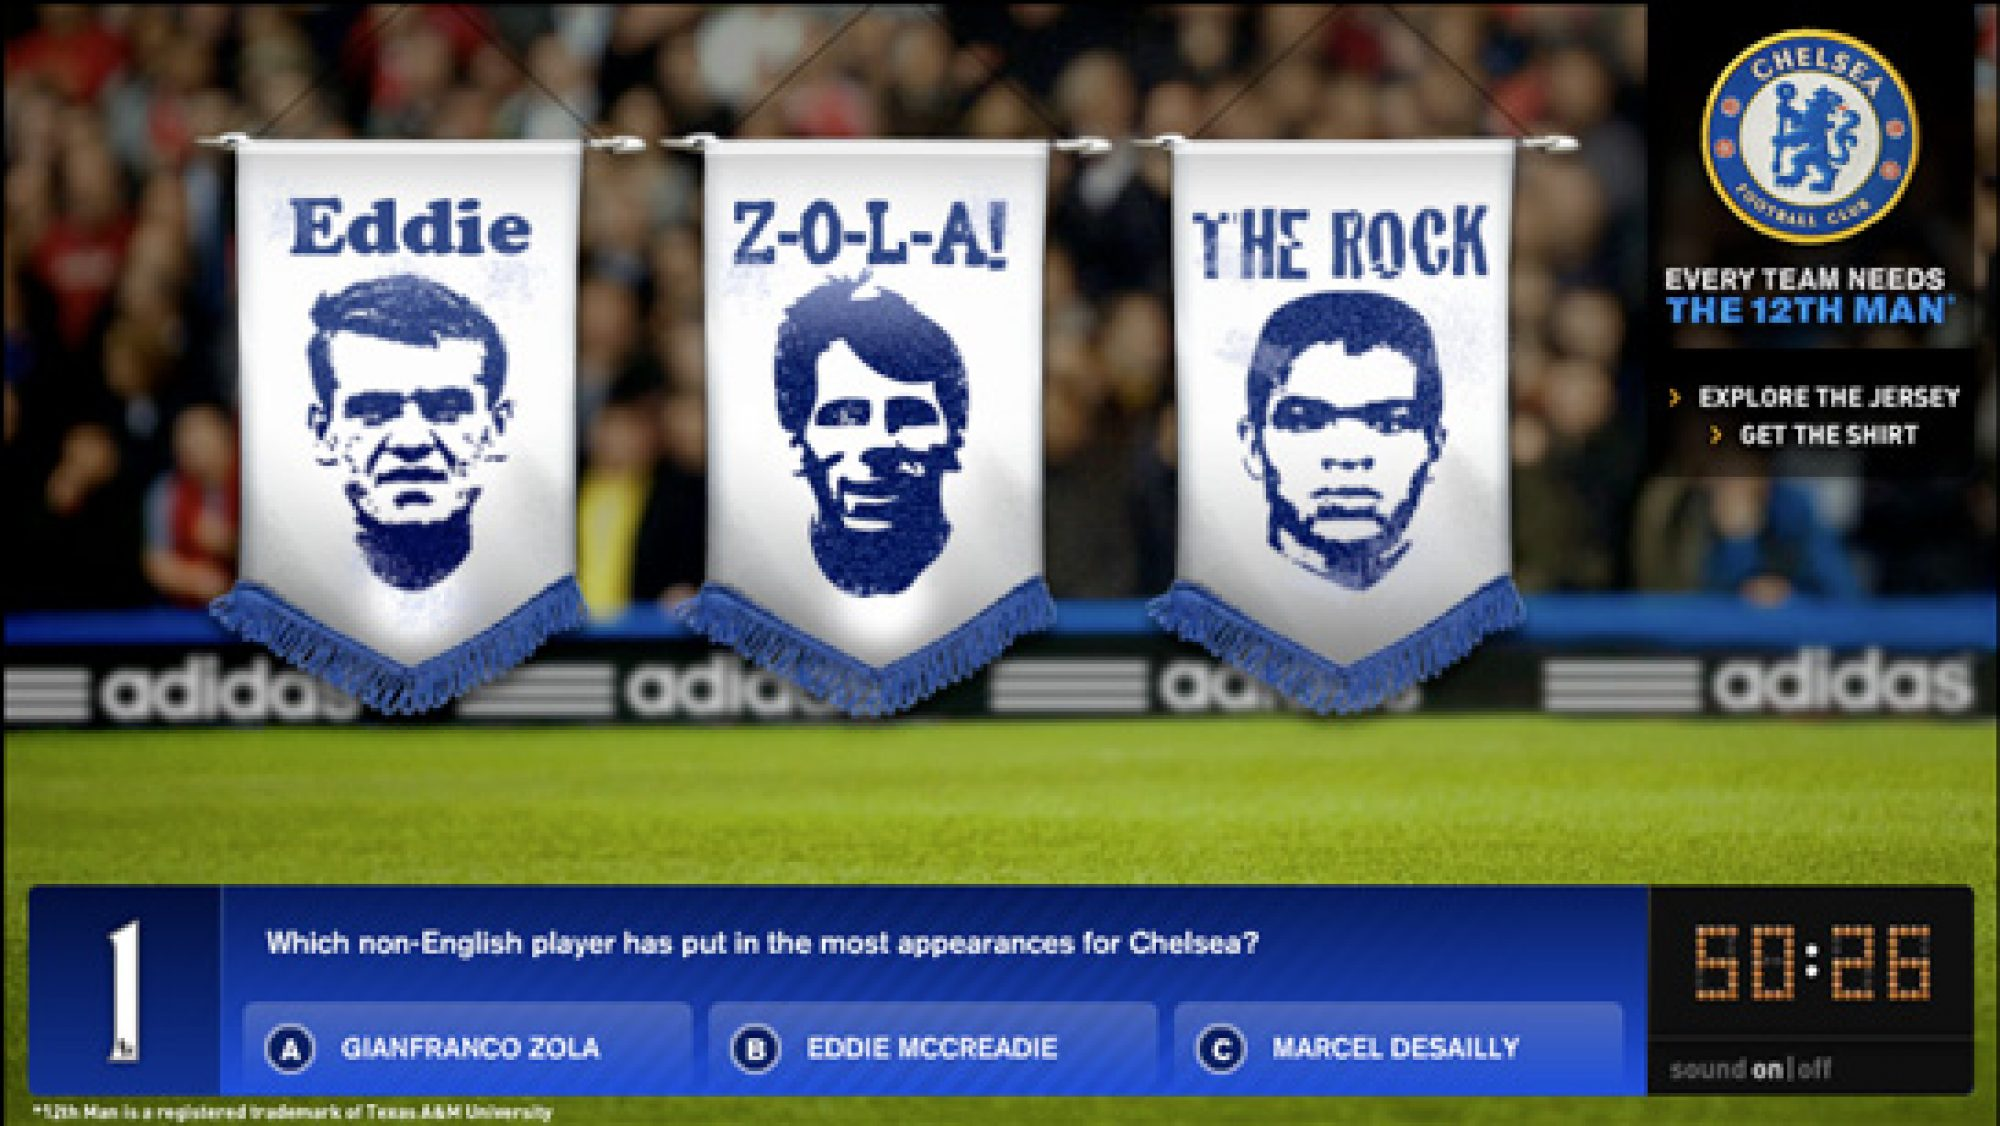 12thman_chelsea_screen2